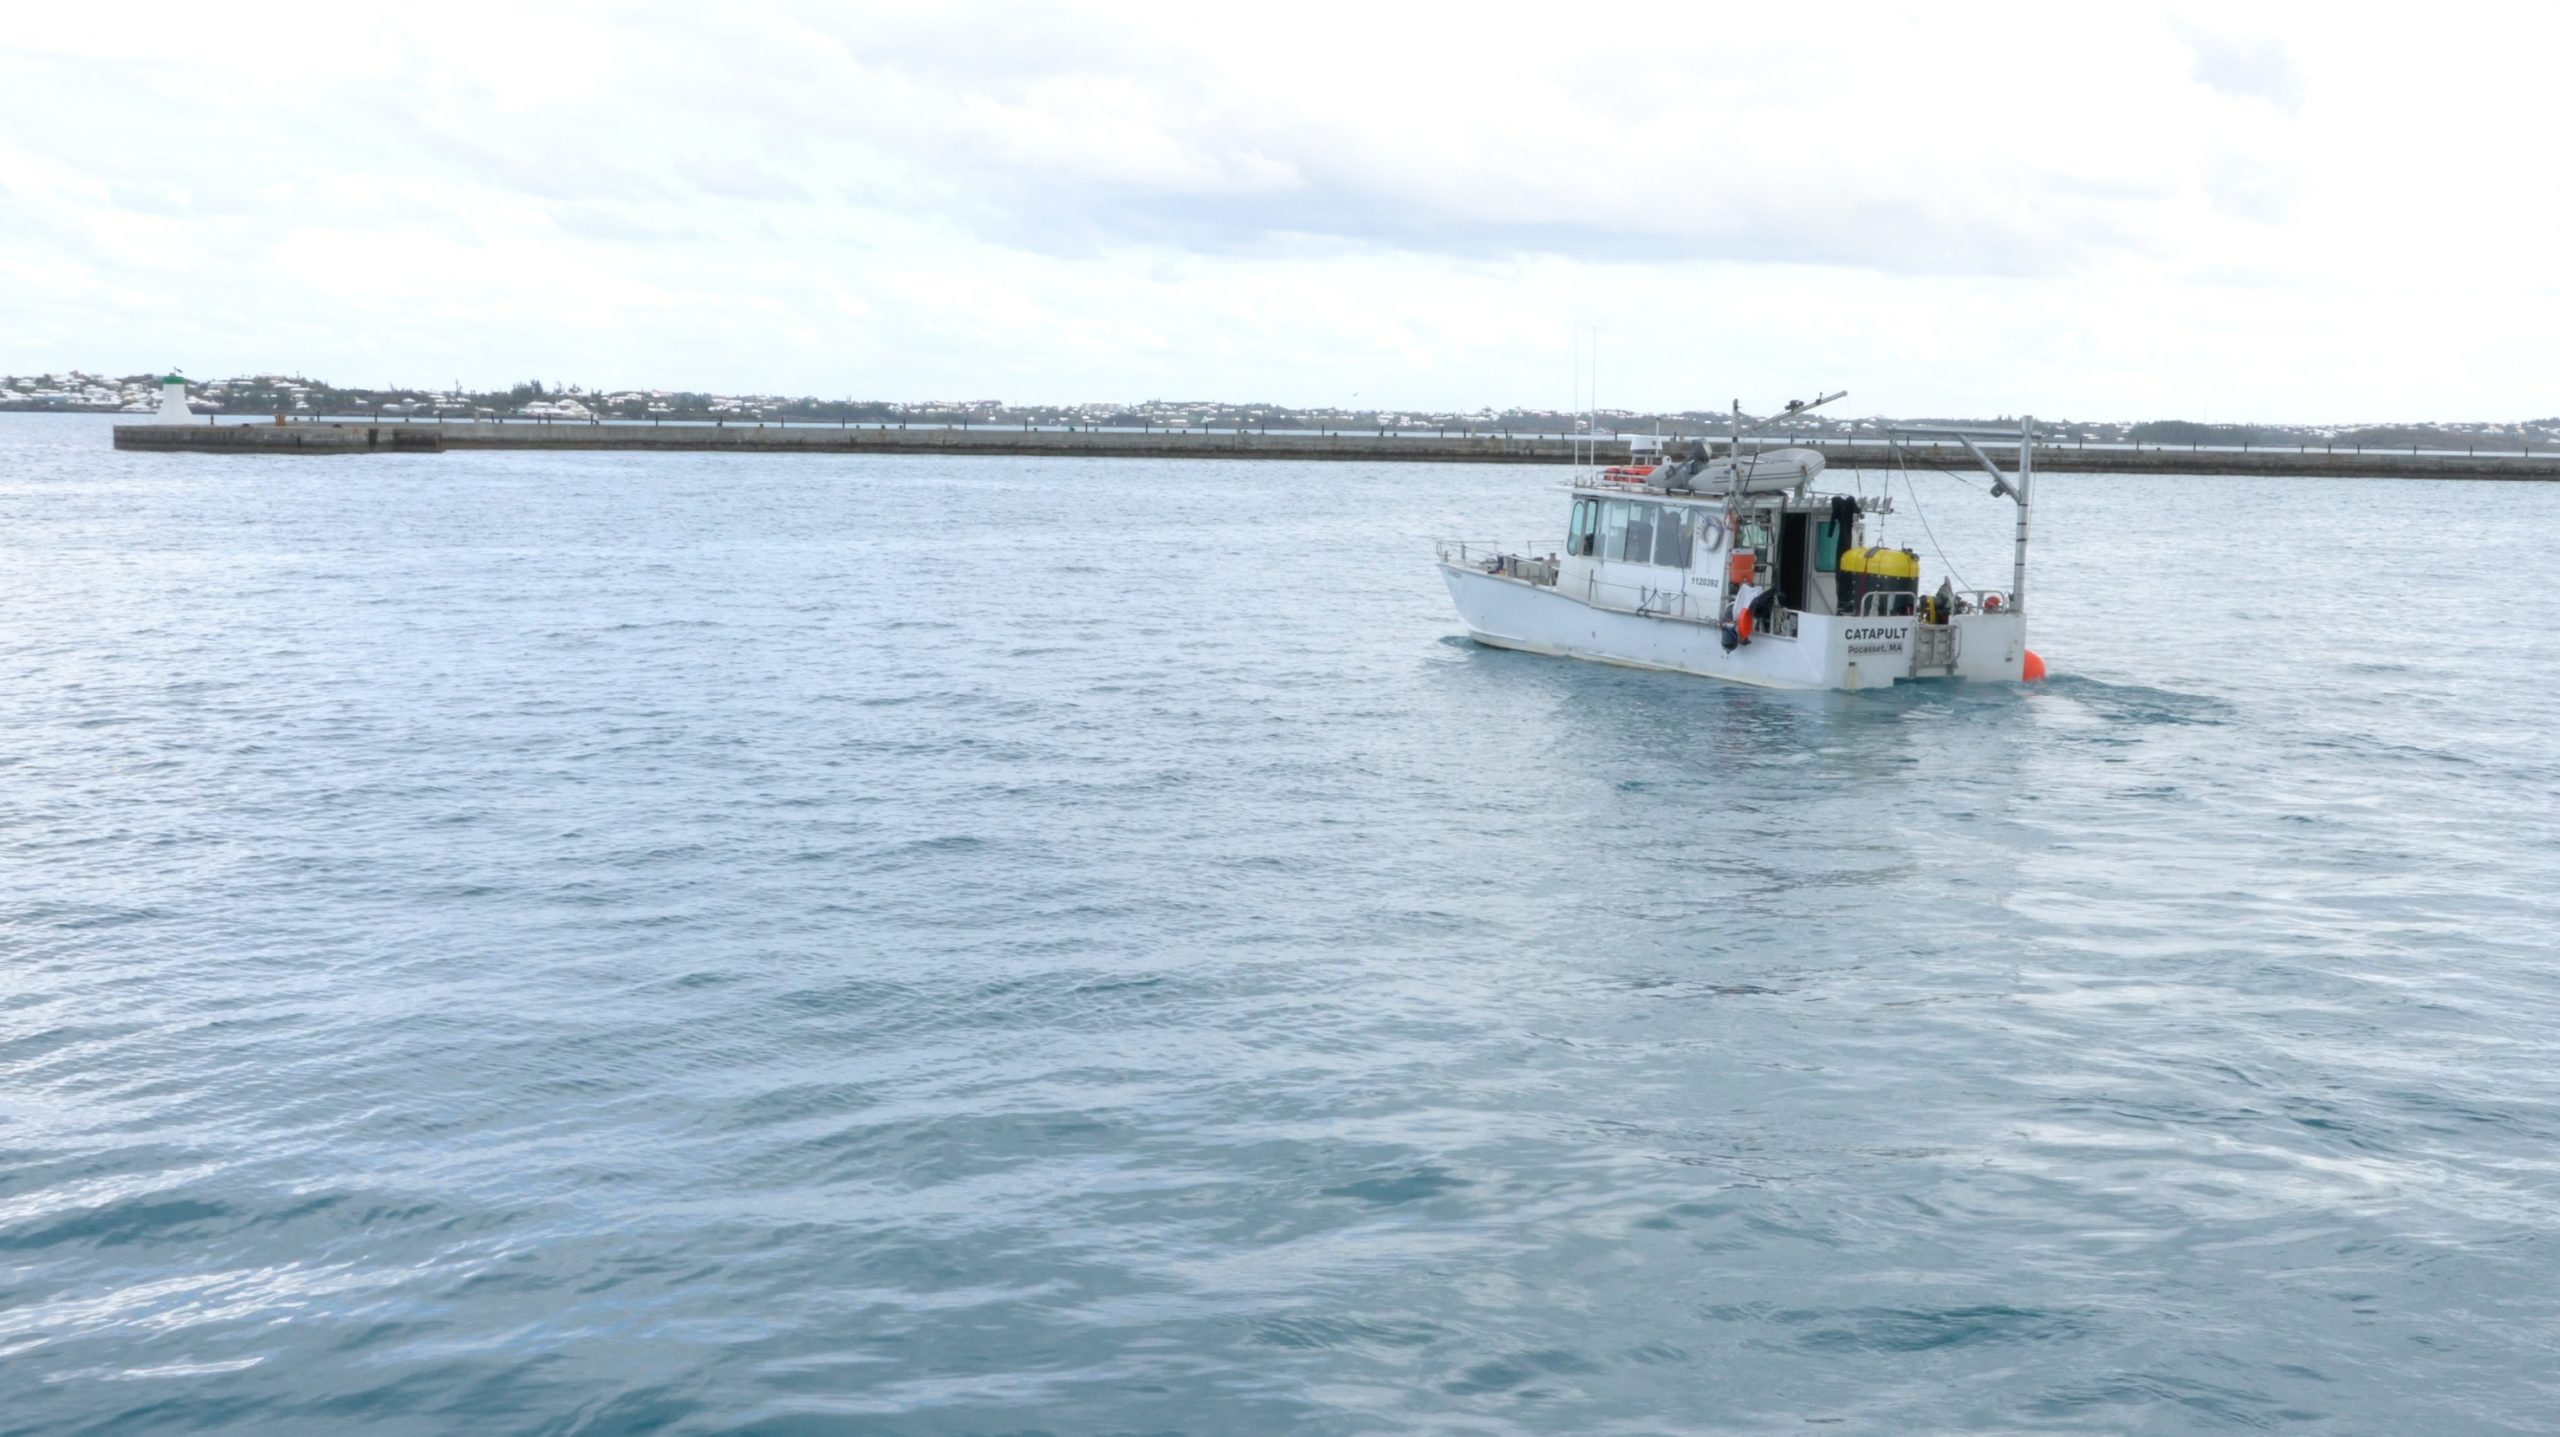 The R/V Catapult transports Mesobot to a nearby marina for testing in saltwater.